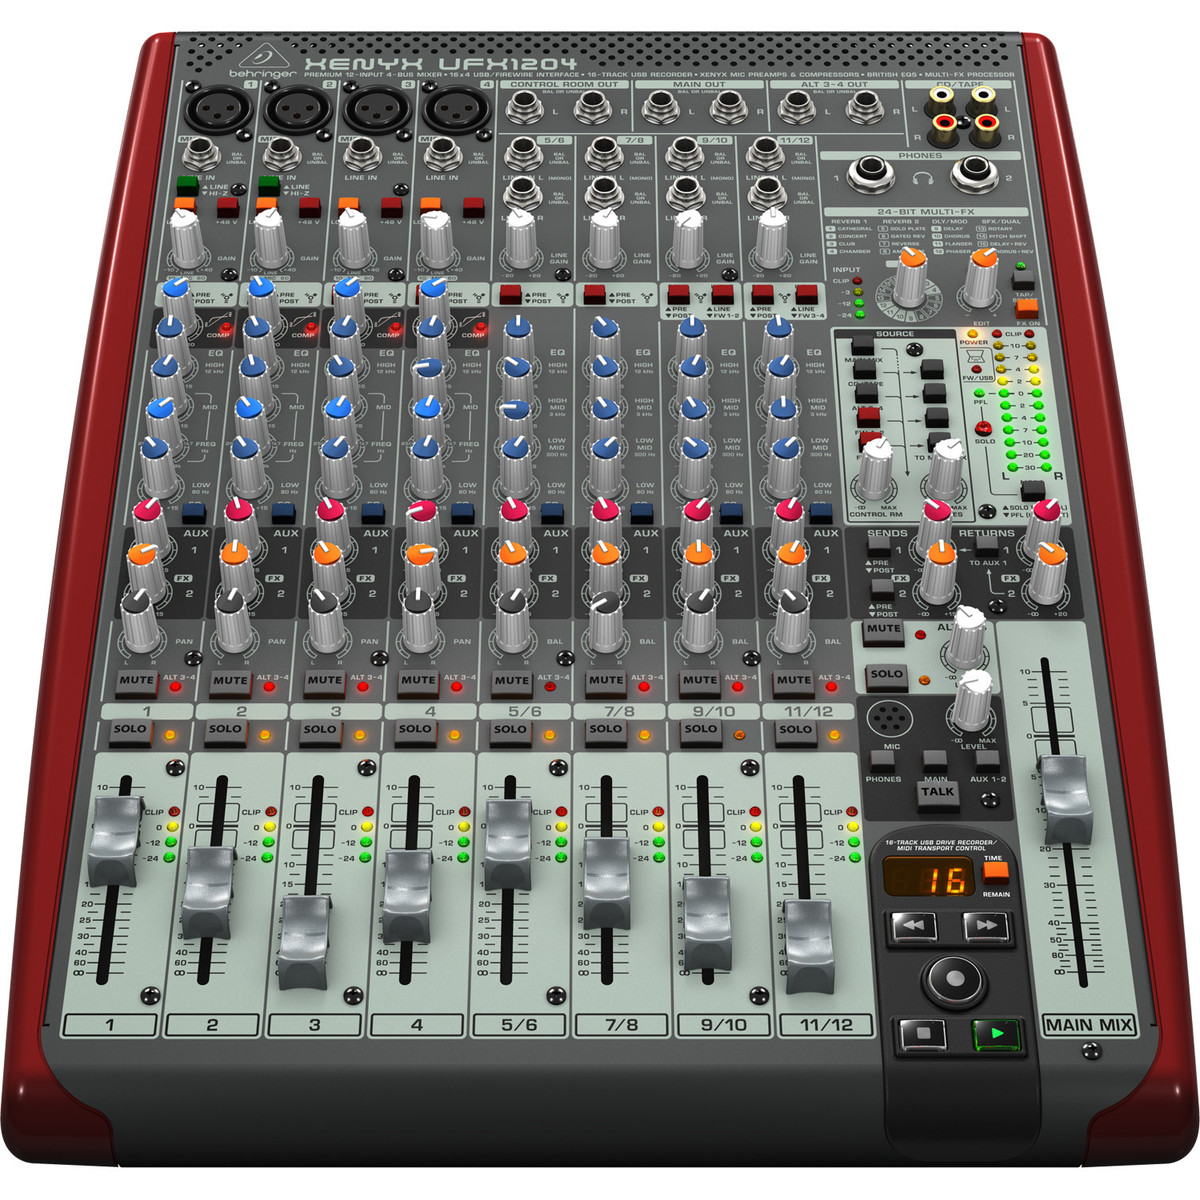 behringer xenyx ufx1204 small format mixer at. Black Bedroom Furniture Sets. Home Design Ideas